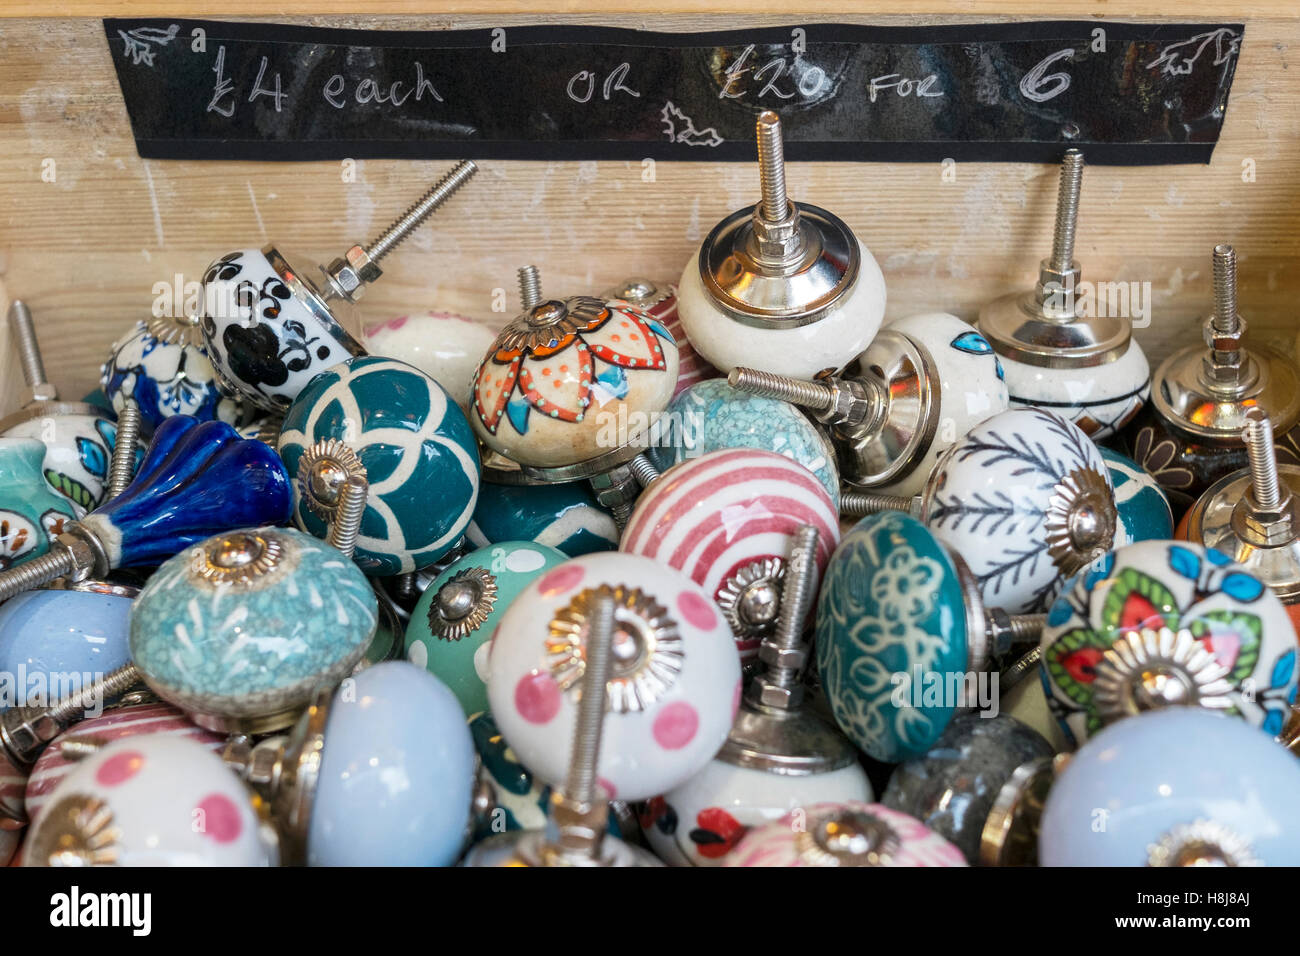 Vintage style door knobs for sale Stock Photo, Royalty Free Image ...